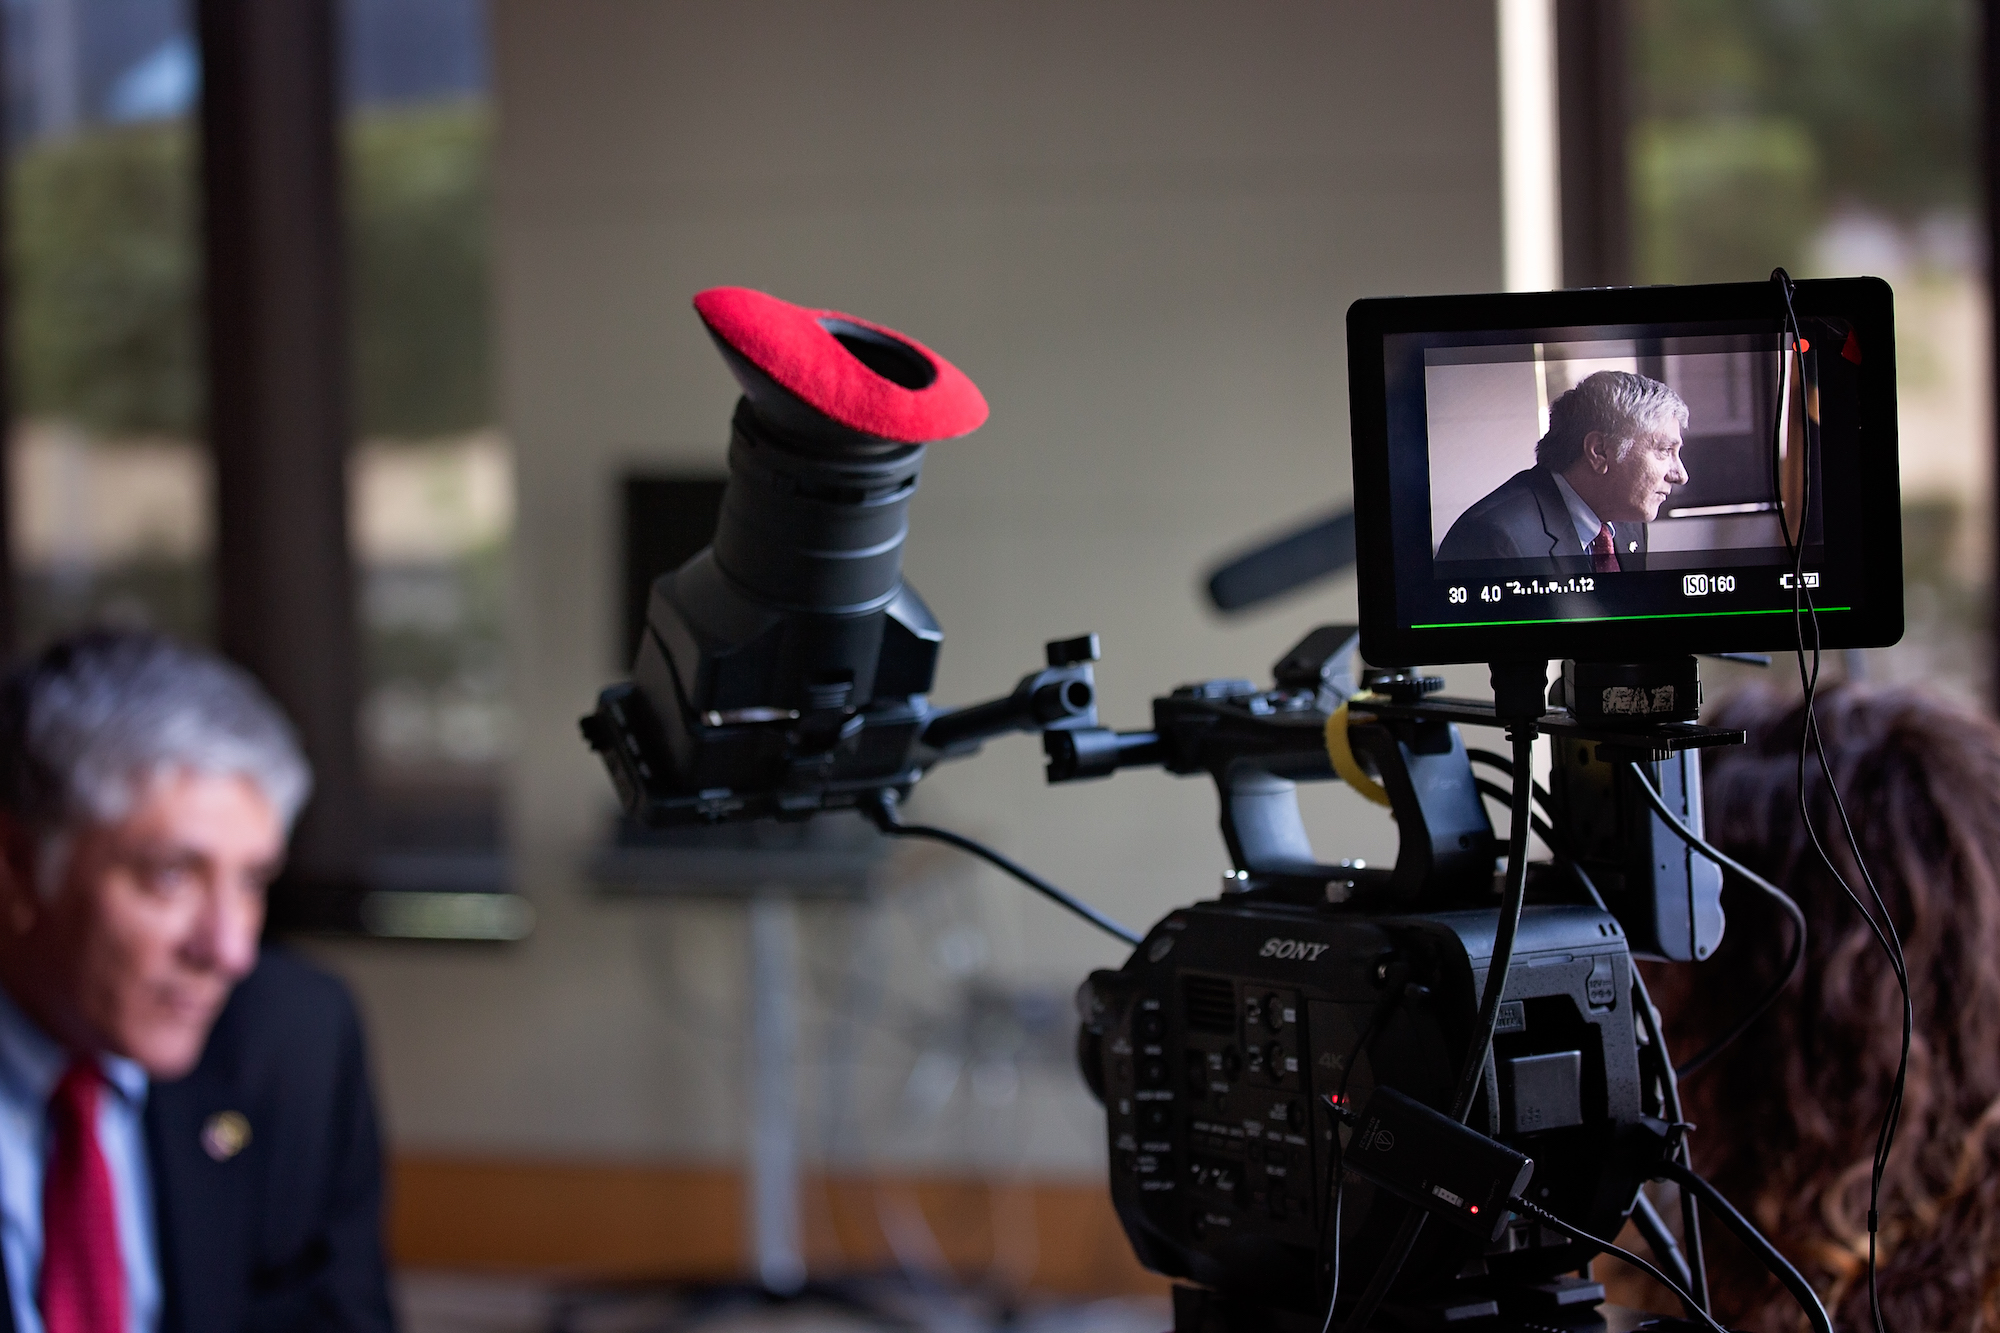 JA filmed ten more alumni documentaries for our 100 Lives series, including an interview with the Honorable Luis G. Moreno, U.S. Ambassador to Jamaica.